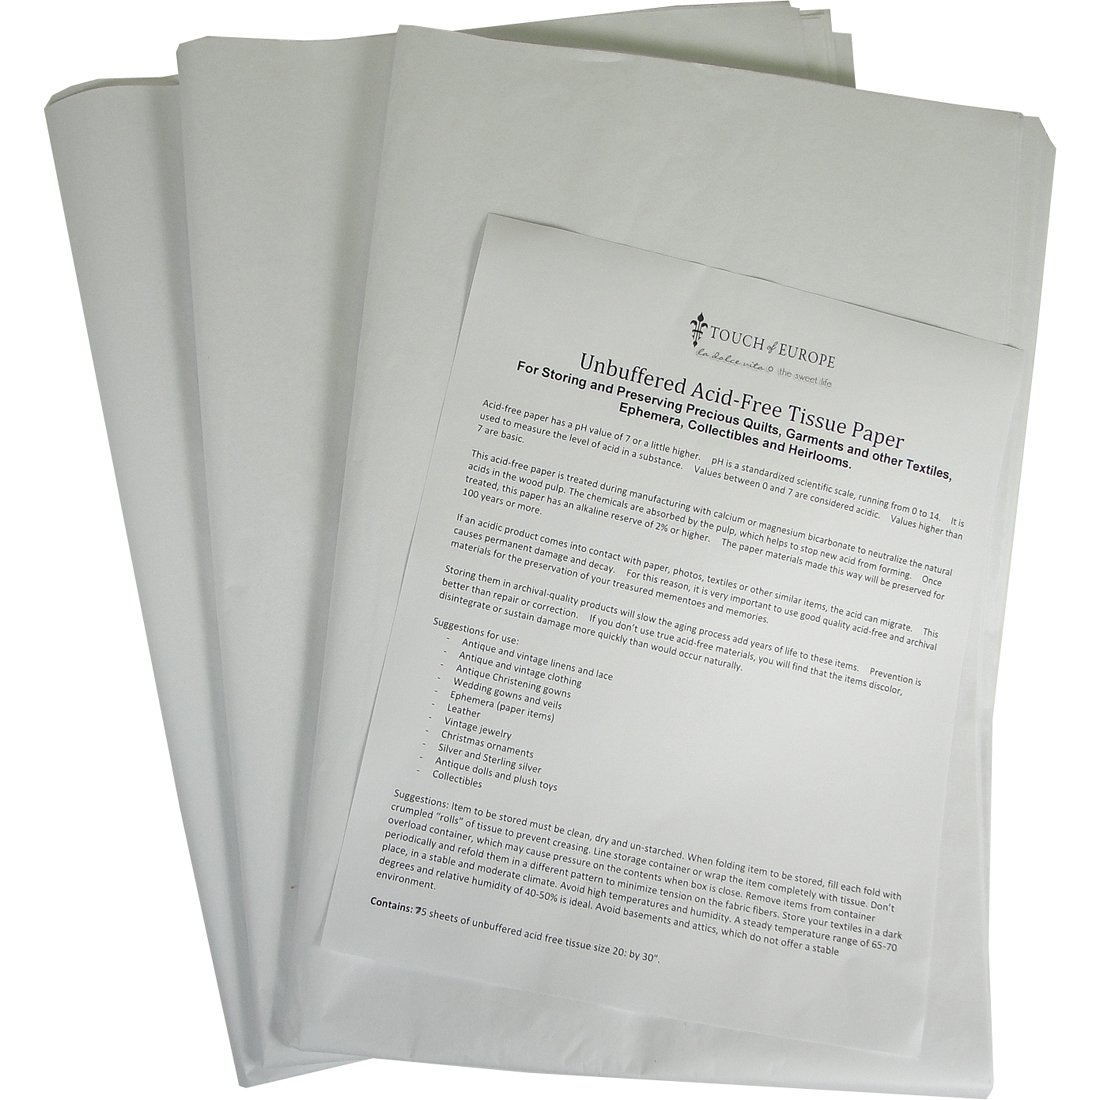 3 Pack Unbuffered Acid-free Paper for Storing and Preserving Precious Quilts, Textiles, Linens. 25 Sheets, 20 By 30 Inches 75 Sheets Total, 3 Pack